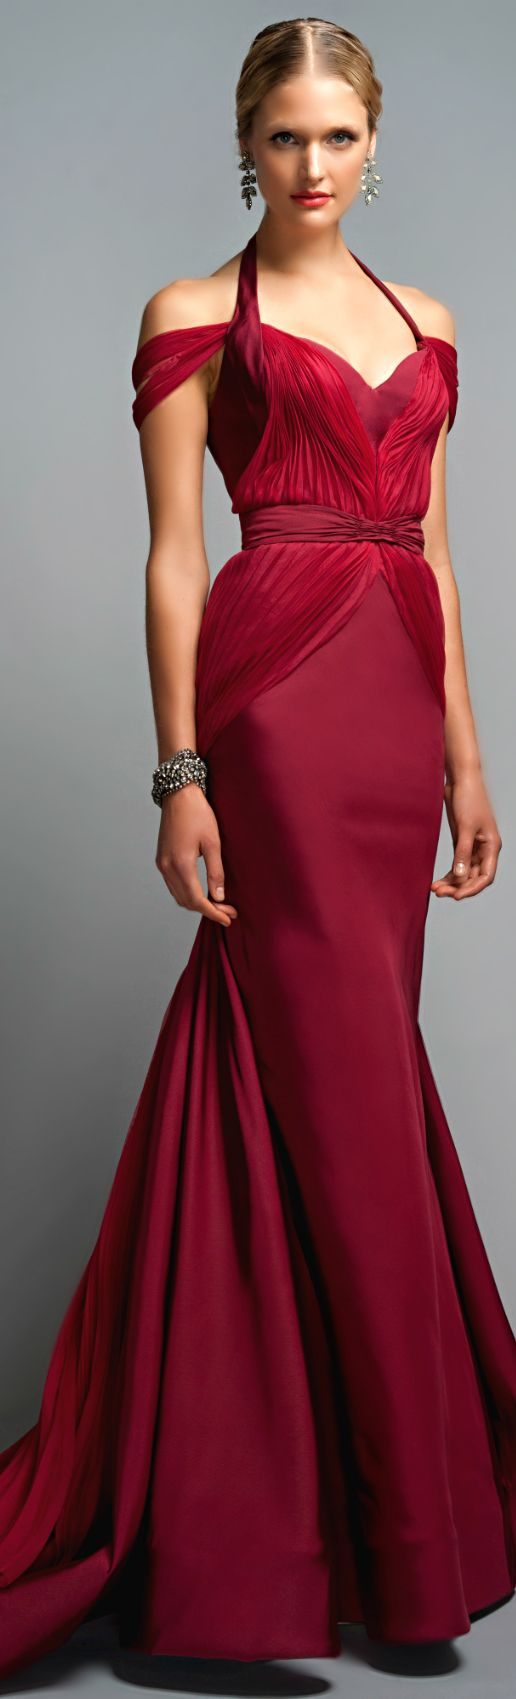 Zac posen abiyeler pinterest zac posen gowns and shapes